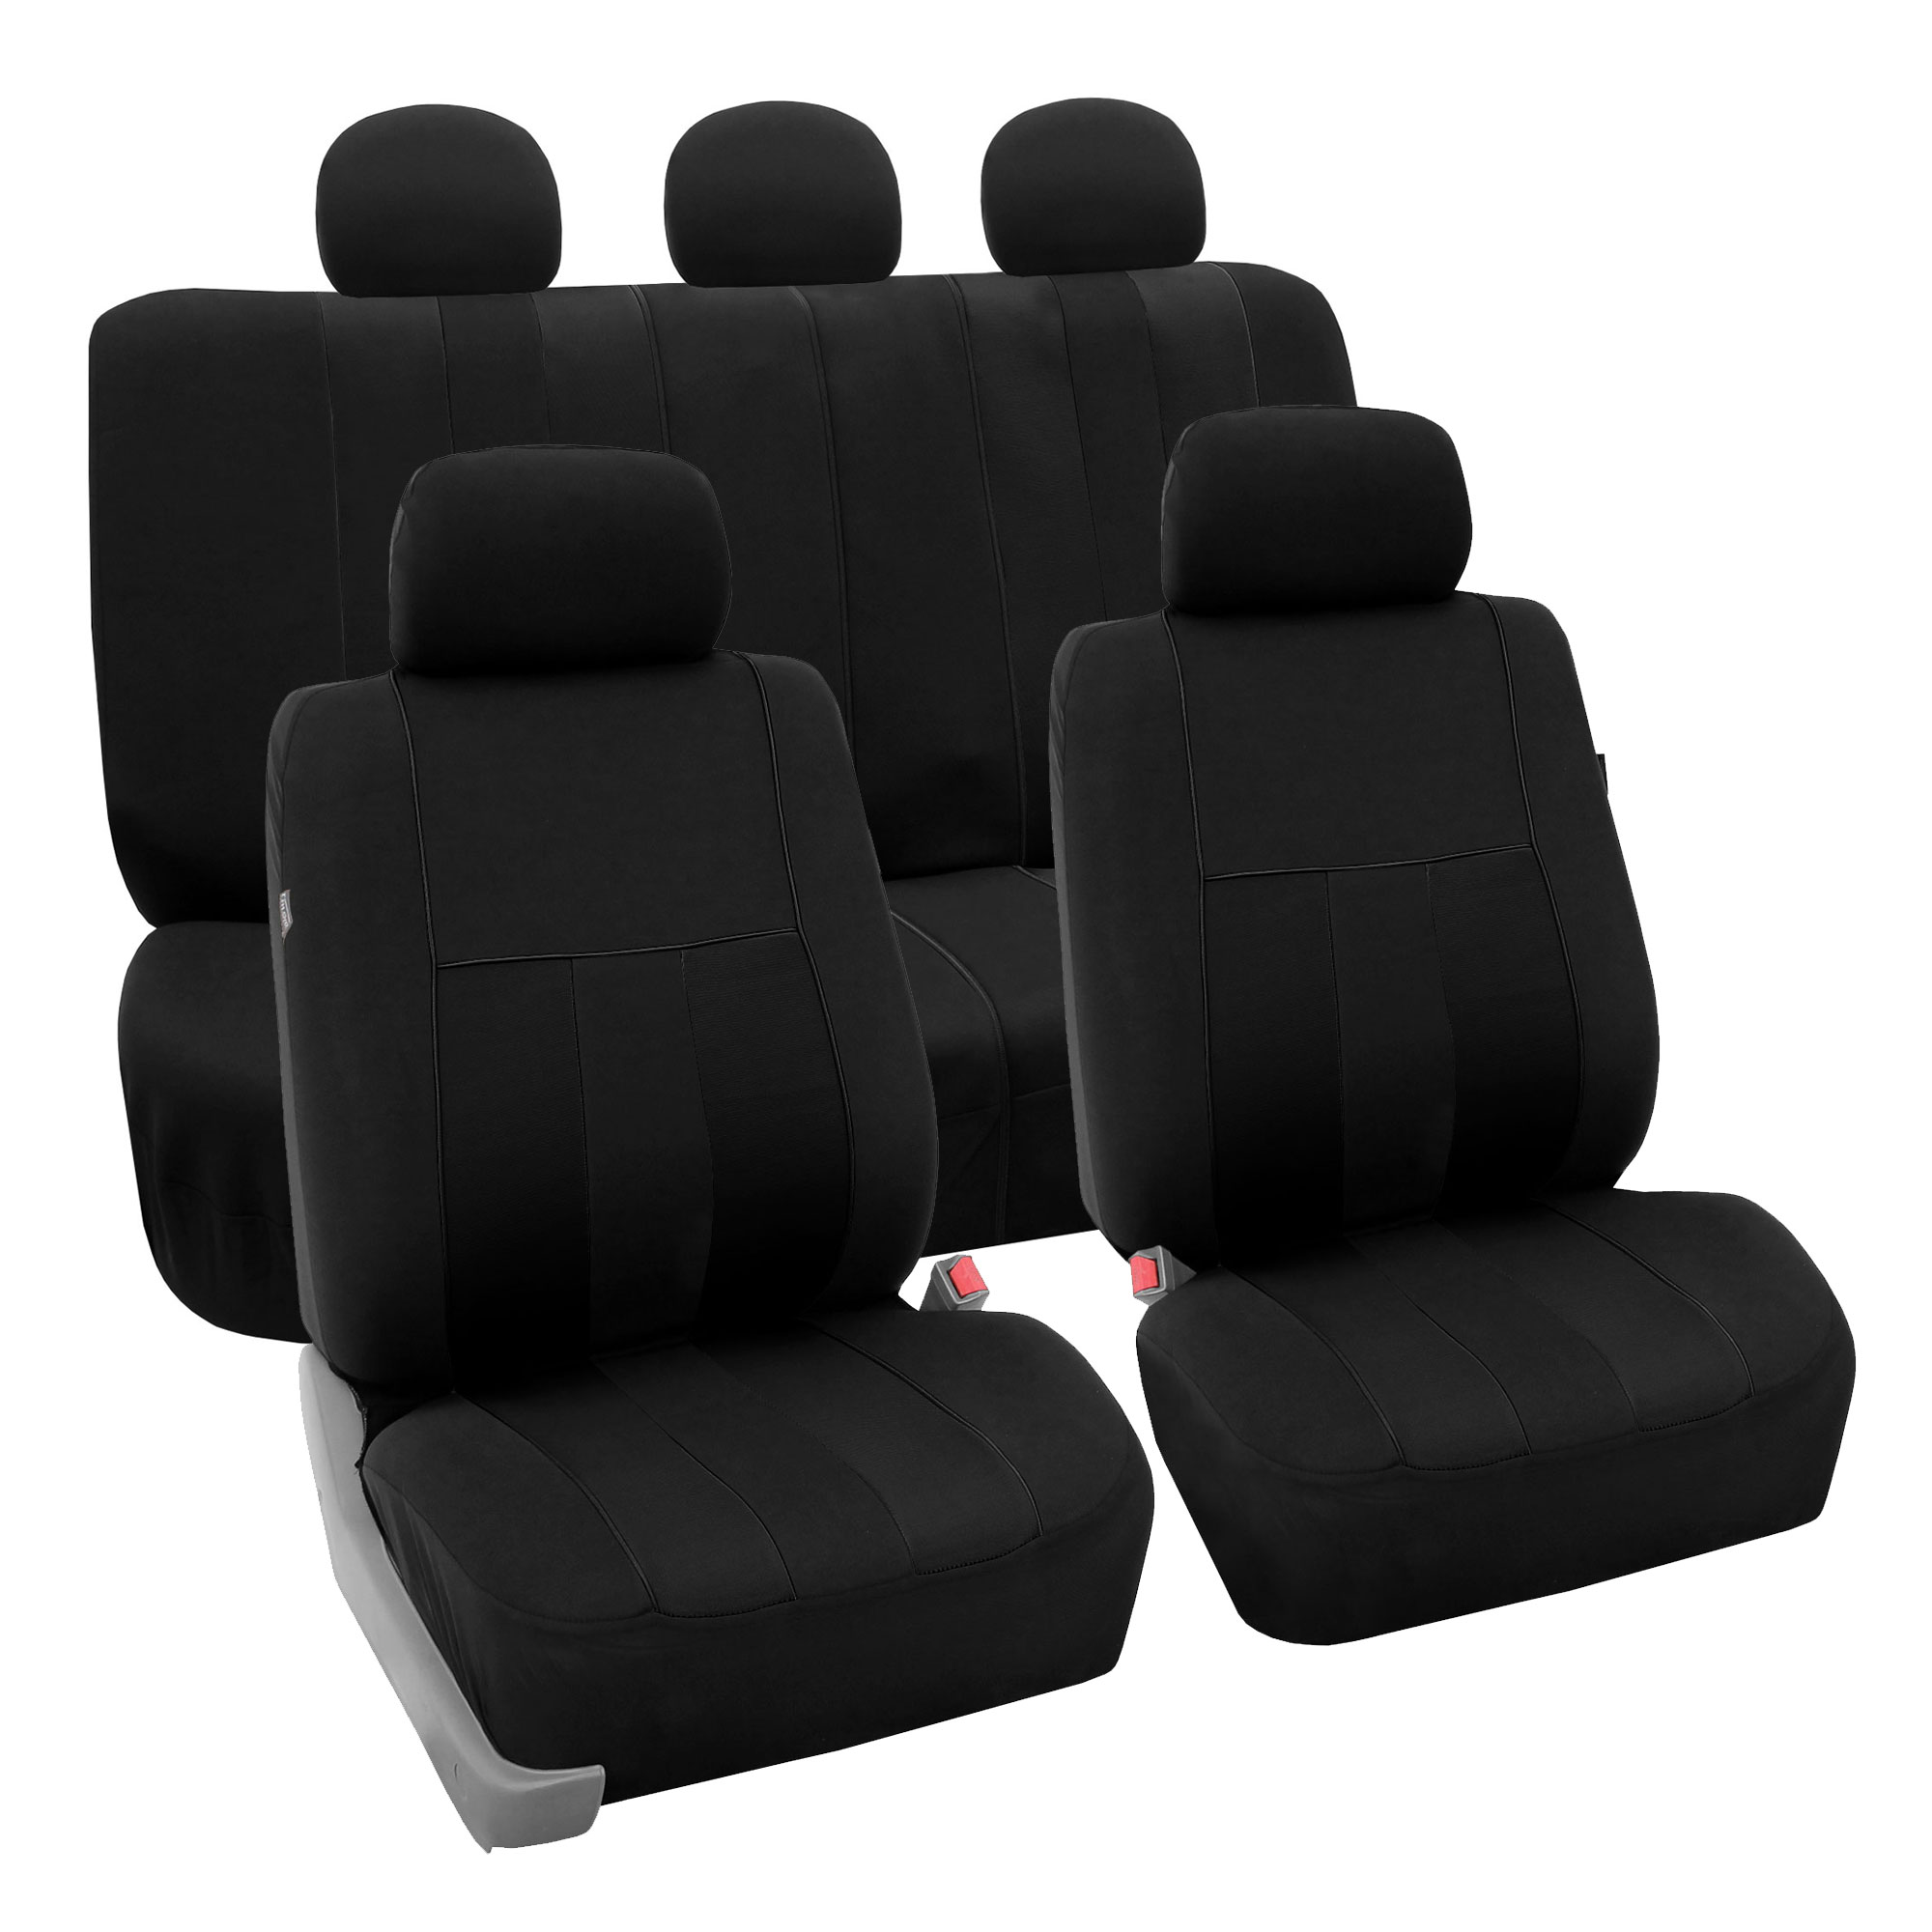 Full Set Car Seat Covers For Auto SUV Van Black W/ 4